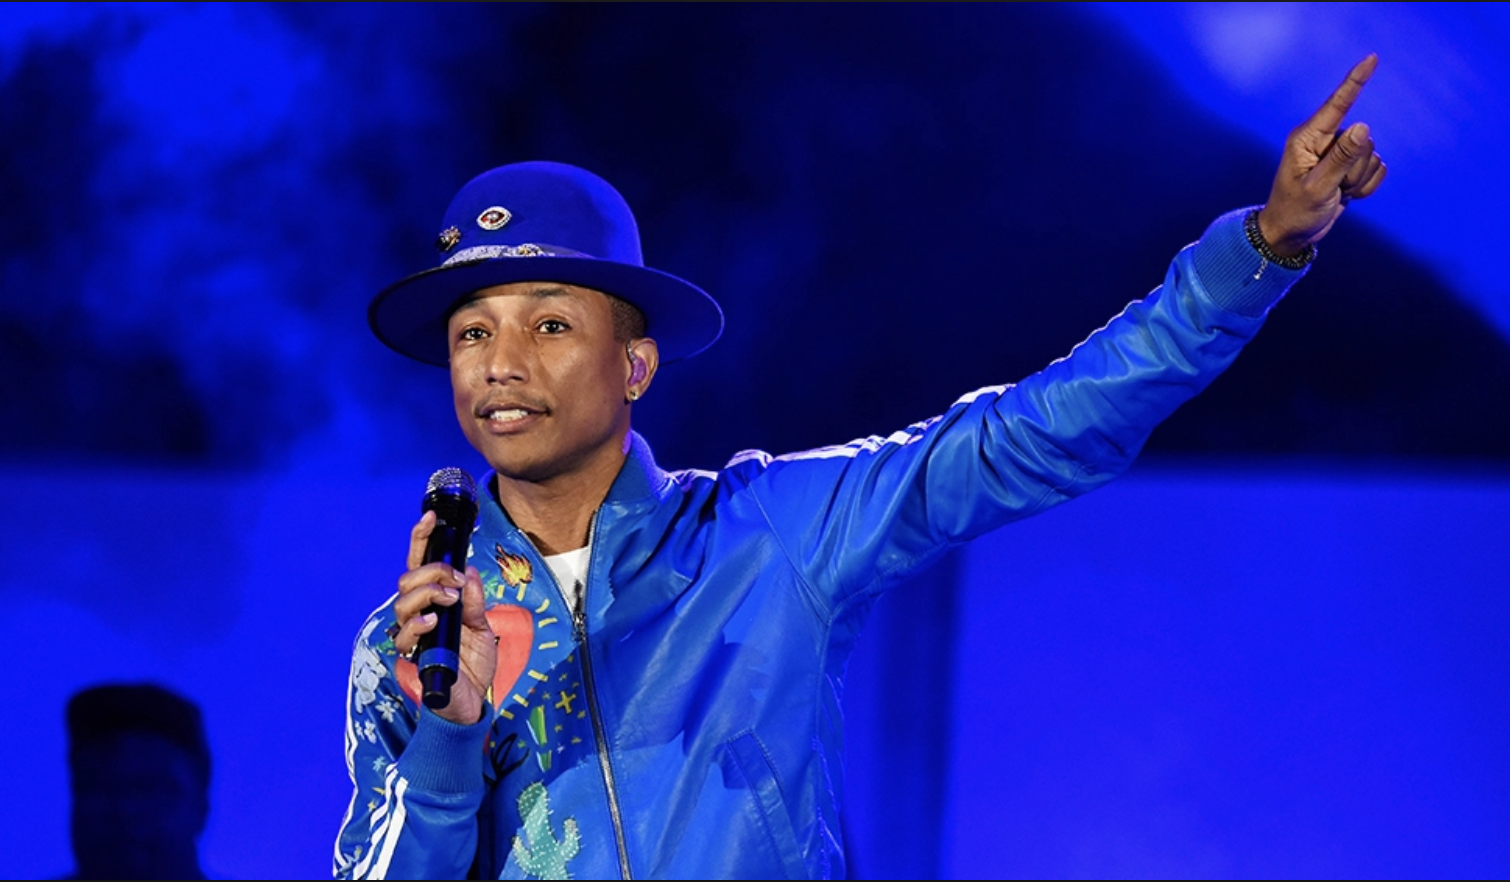 Hire Pharrell Williams for Events